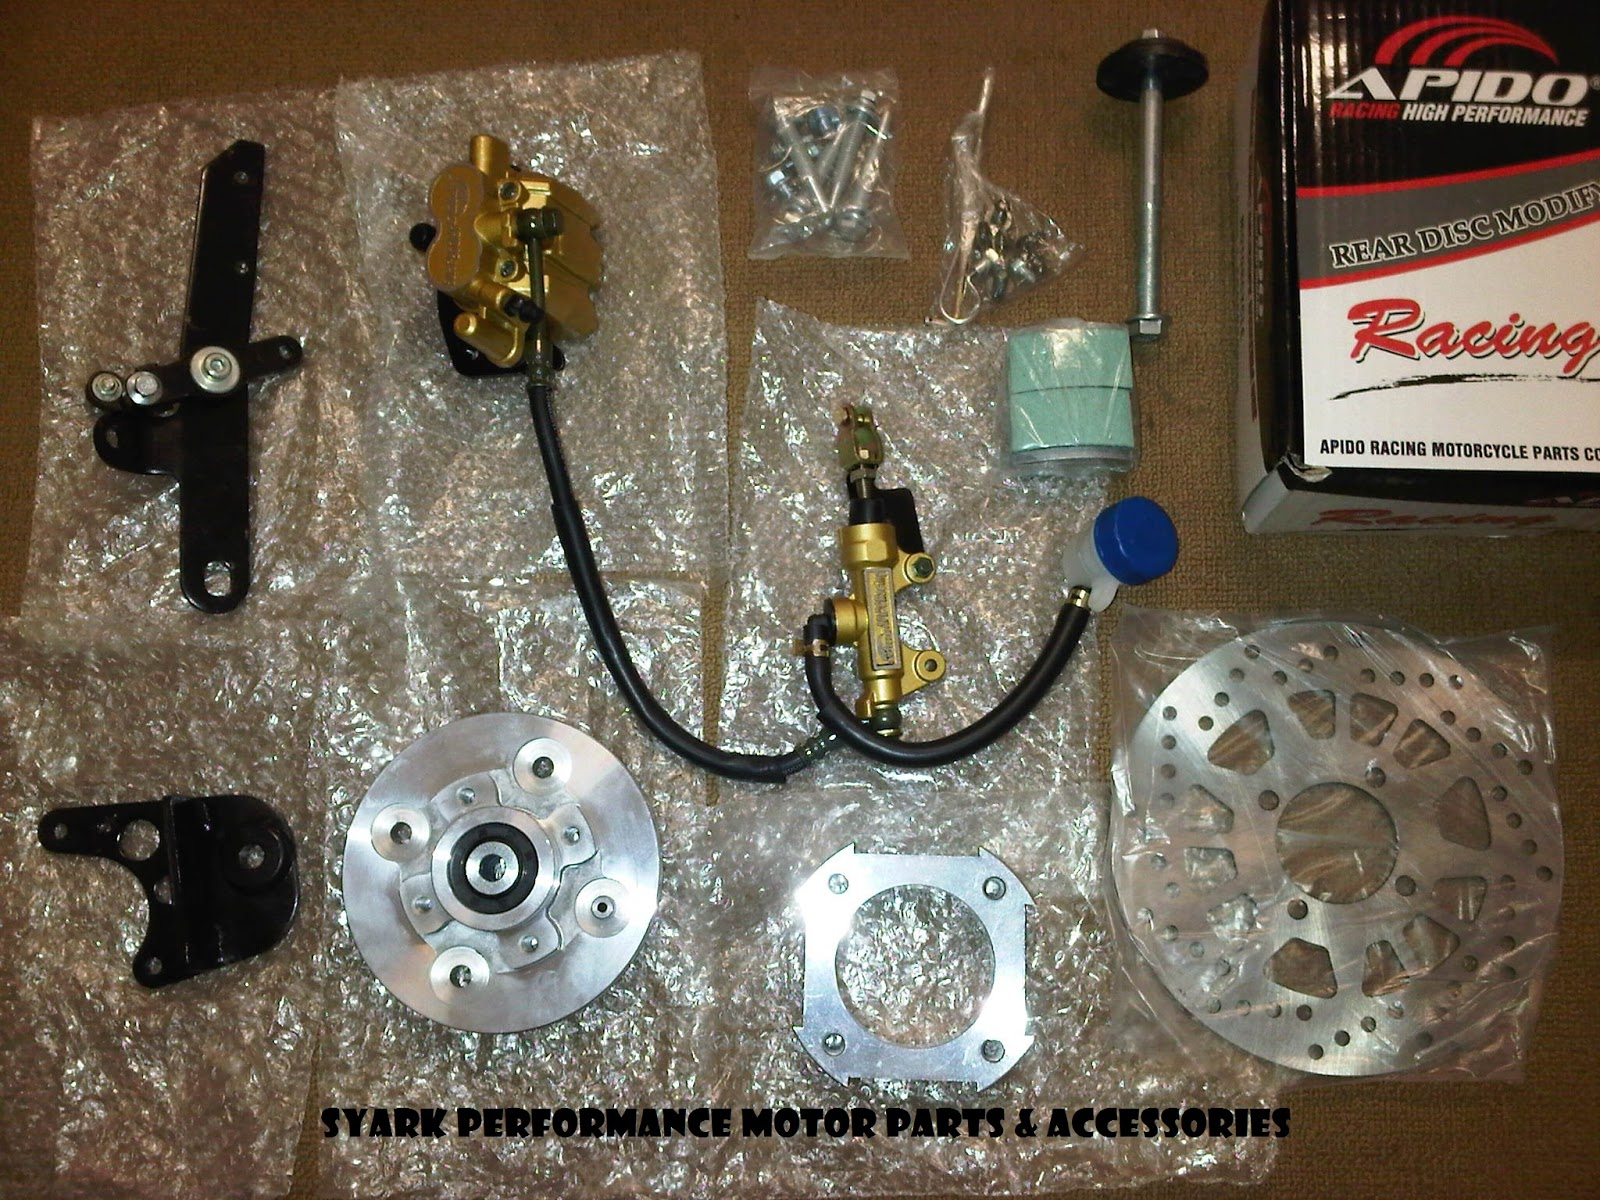 Syark Performance Motor Parts And Accessories Online Shop (Est. Since 2010): New APIDO Rear Disc ...